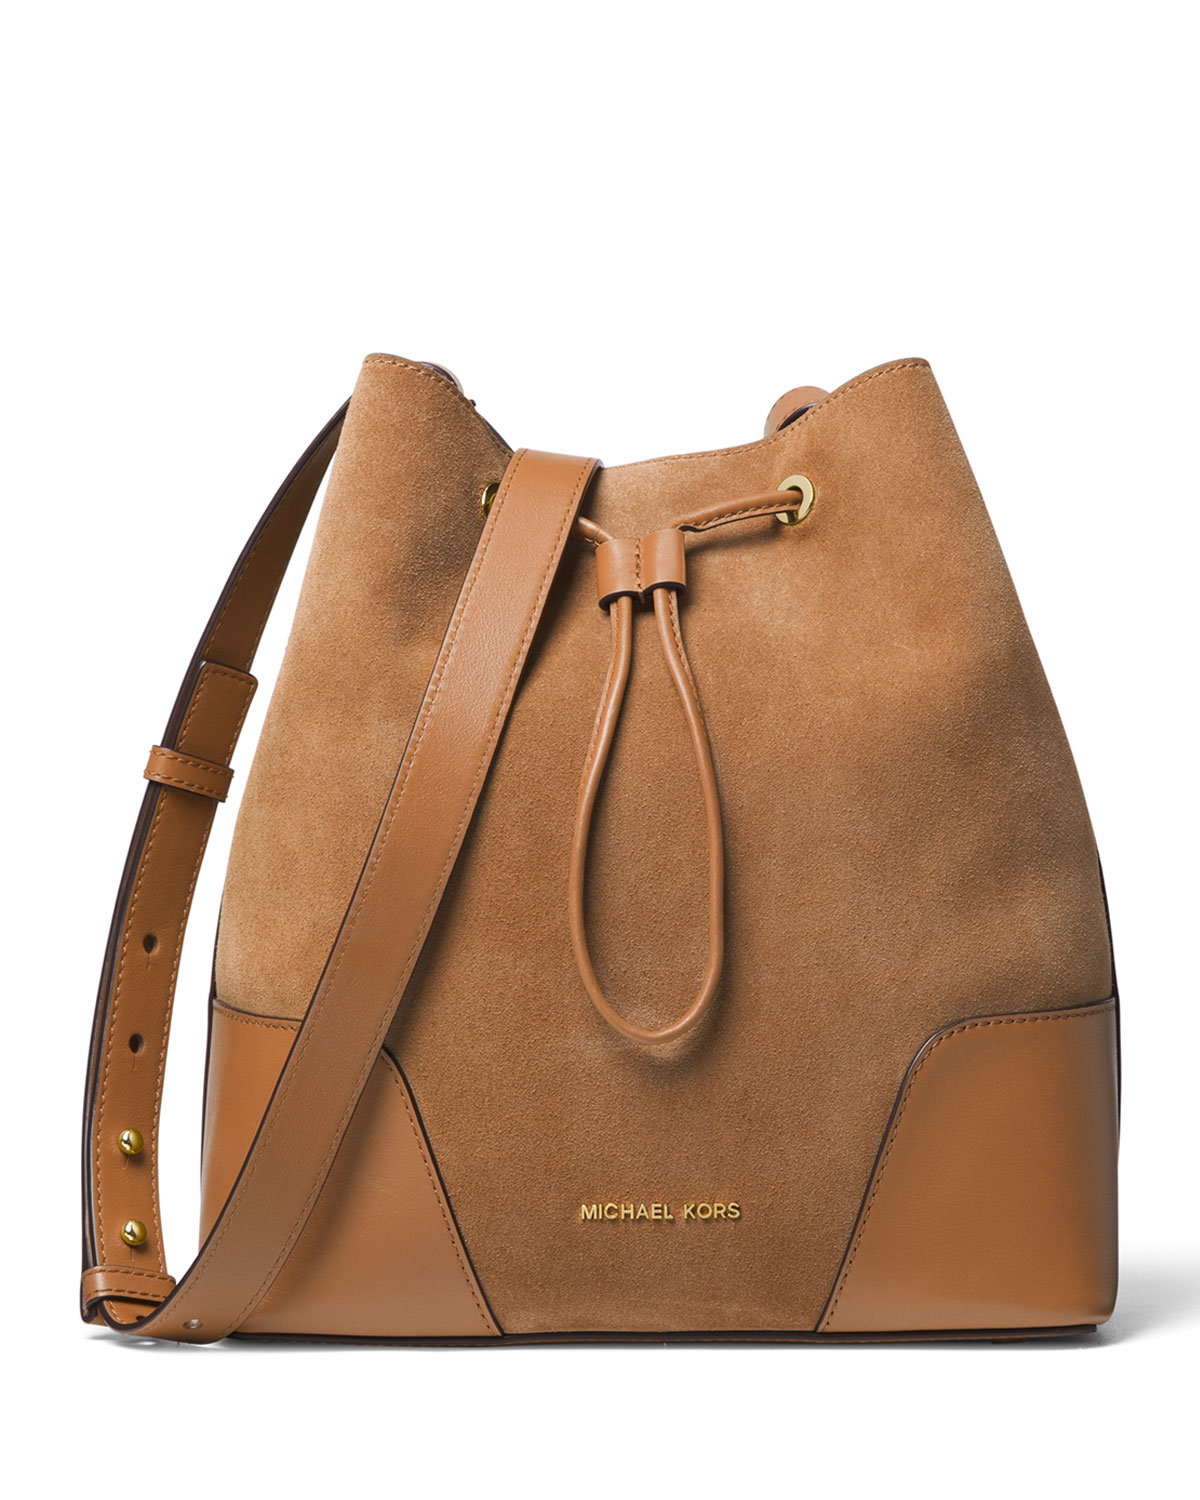 MICHAEL Michael Kors Cary Medium Suede Leather Bucket Bag  f47d4d529bb1a